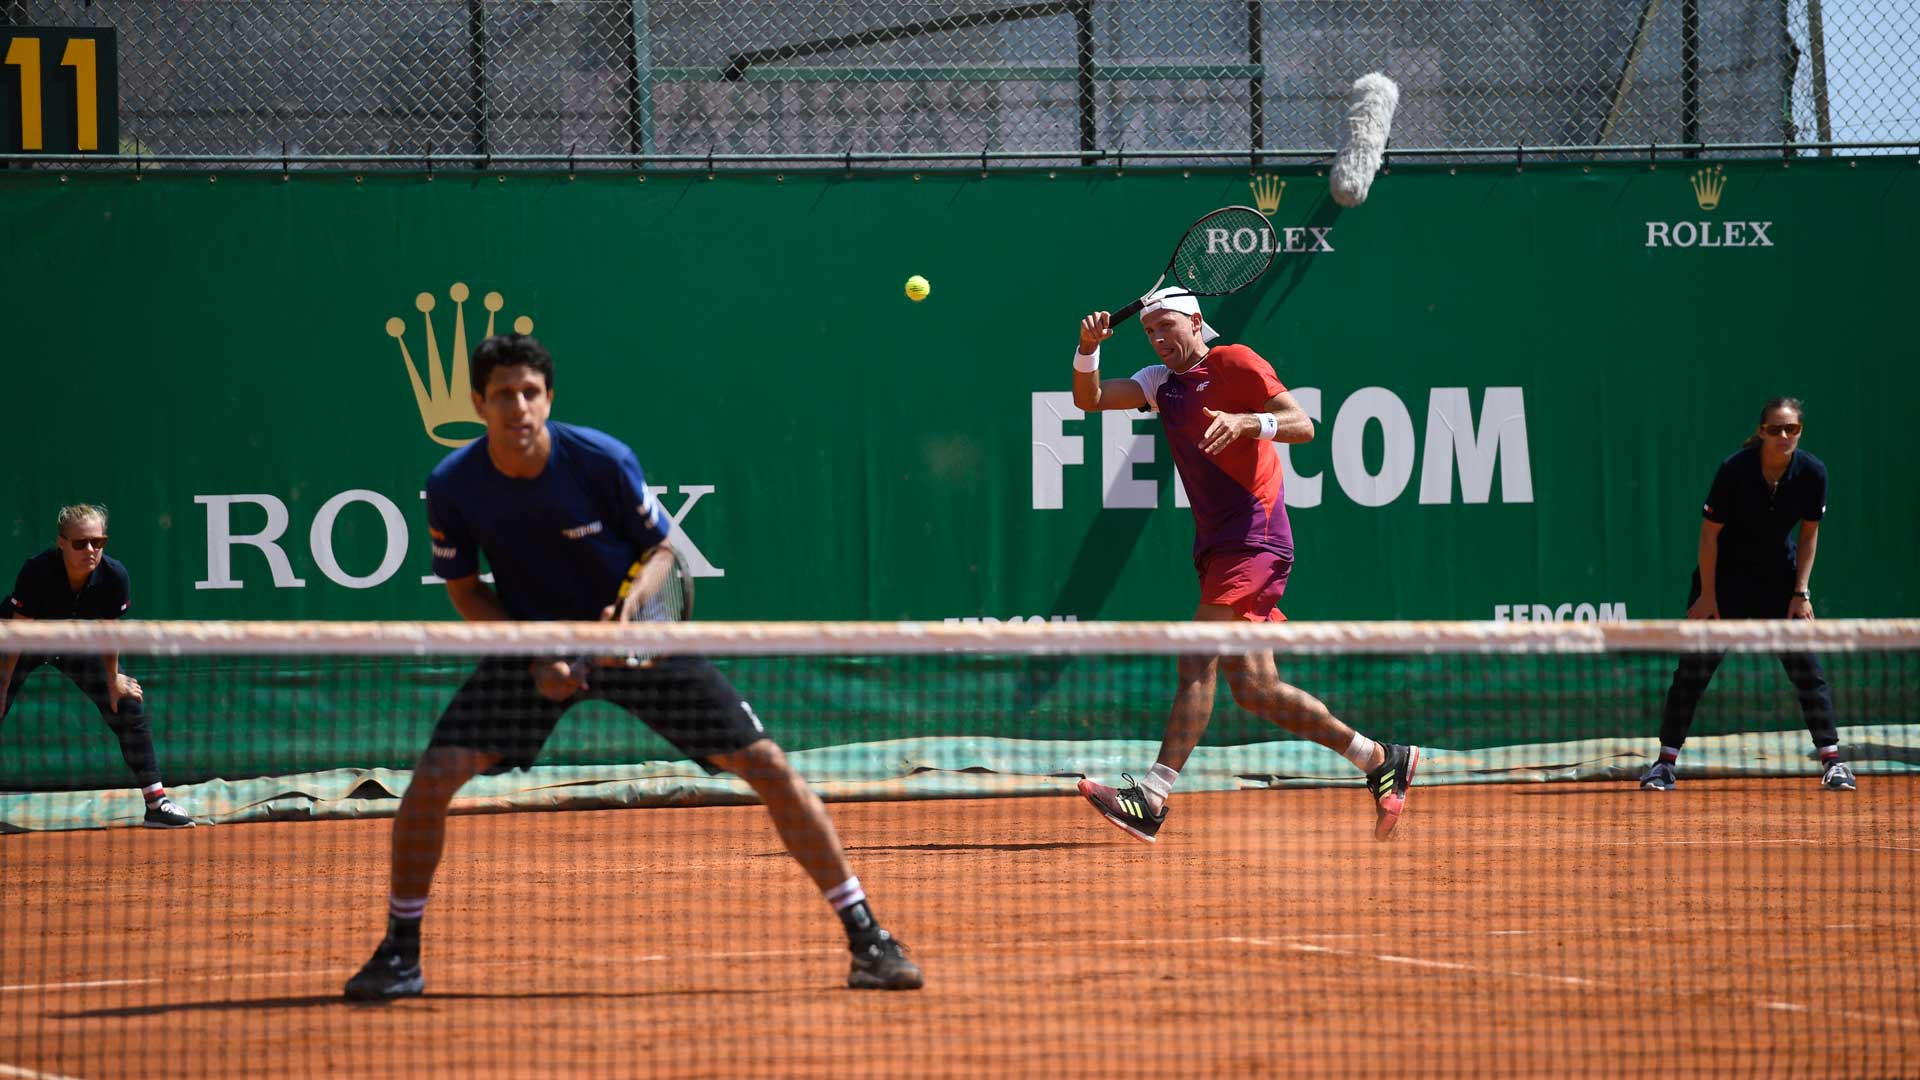 Marcelo Melo and Lukasz Kubot compete at the 2019 Rolex Monte-Carlo Masters.